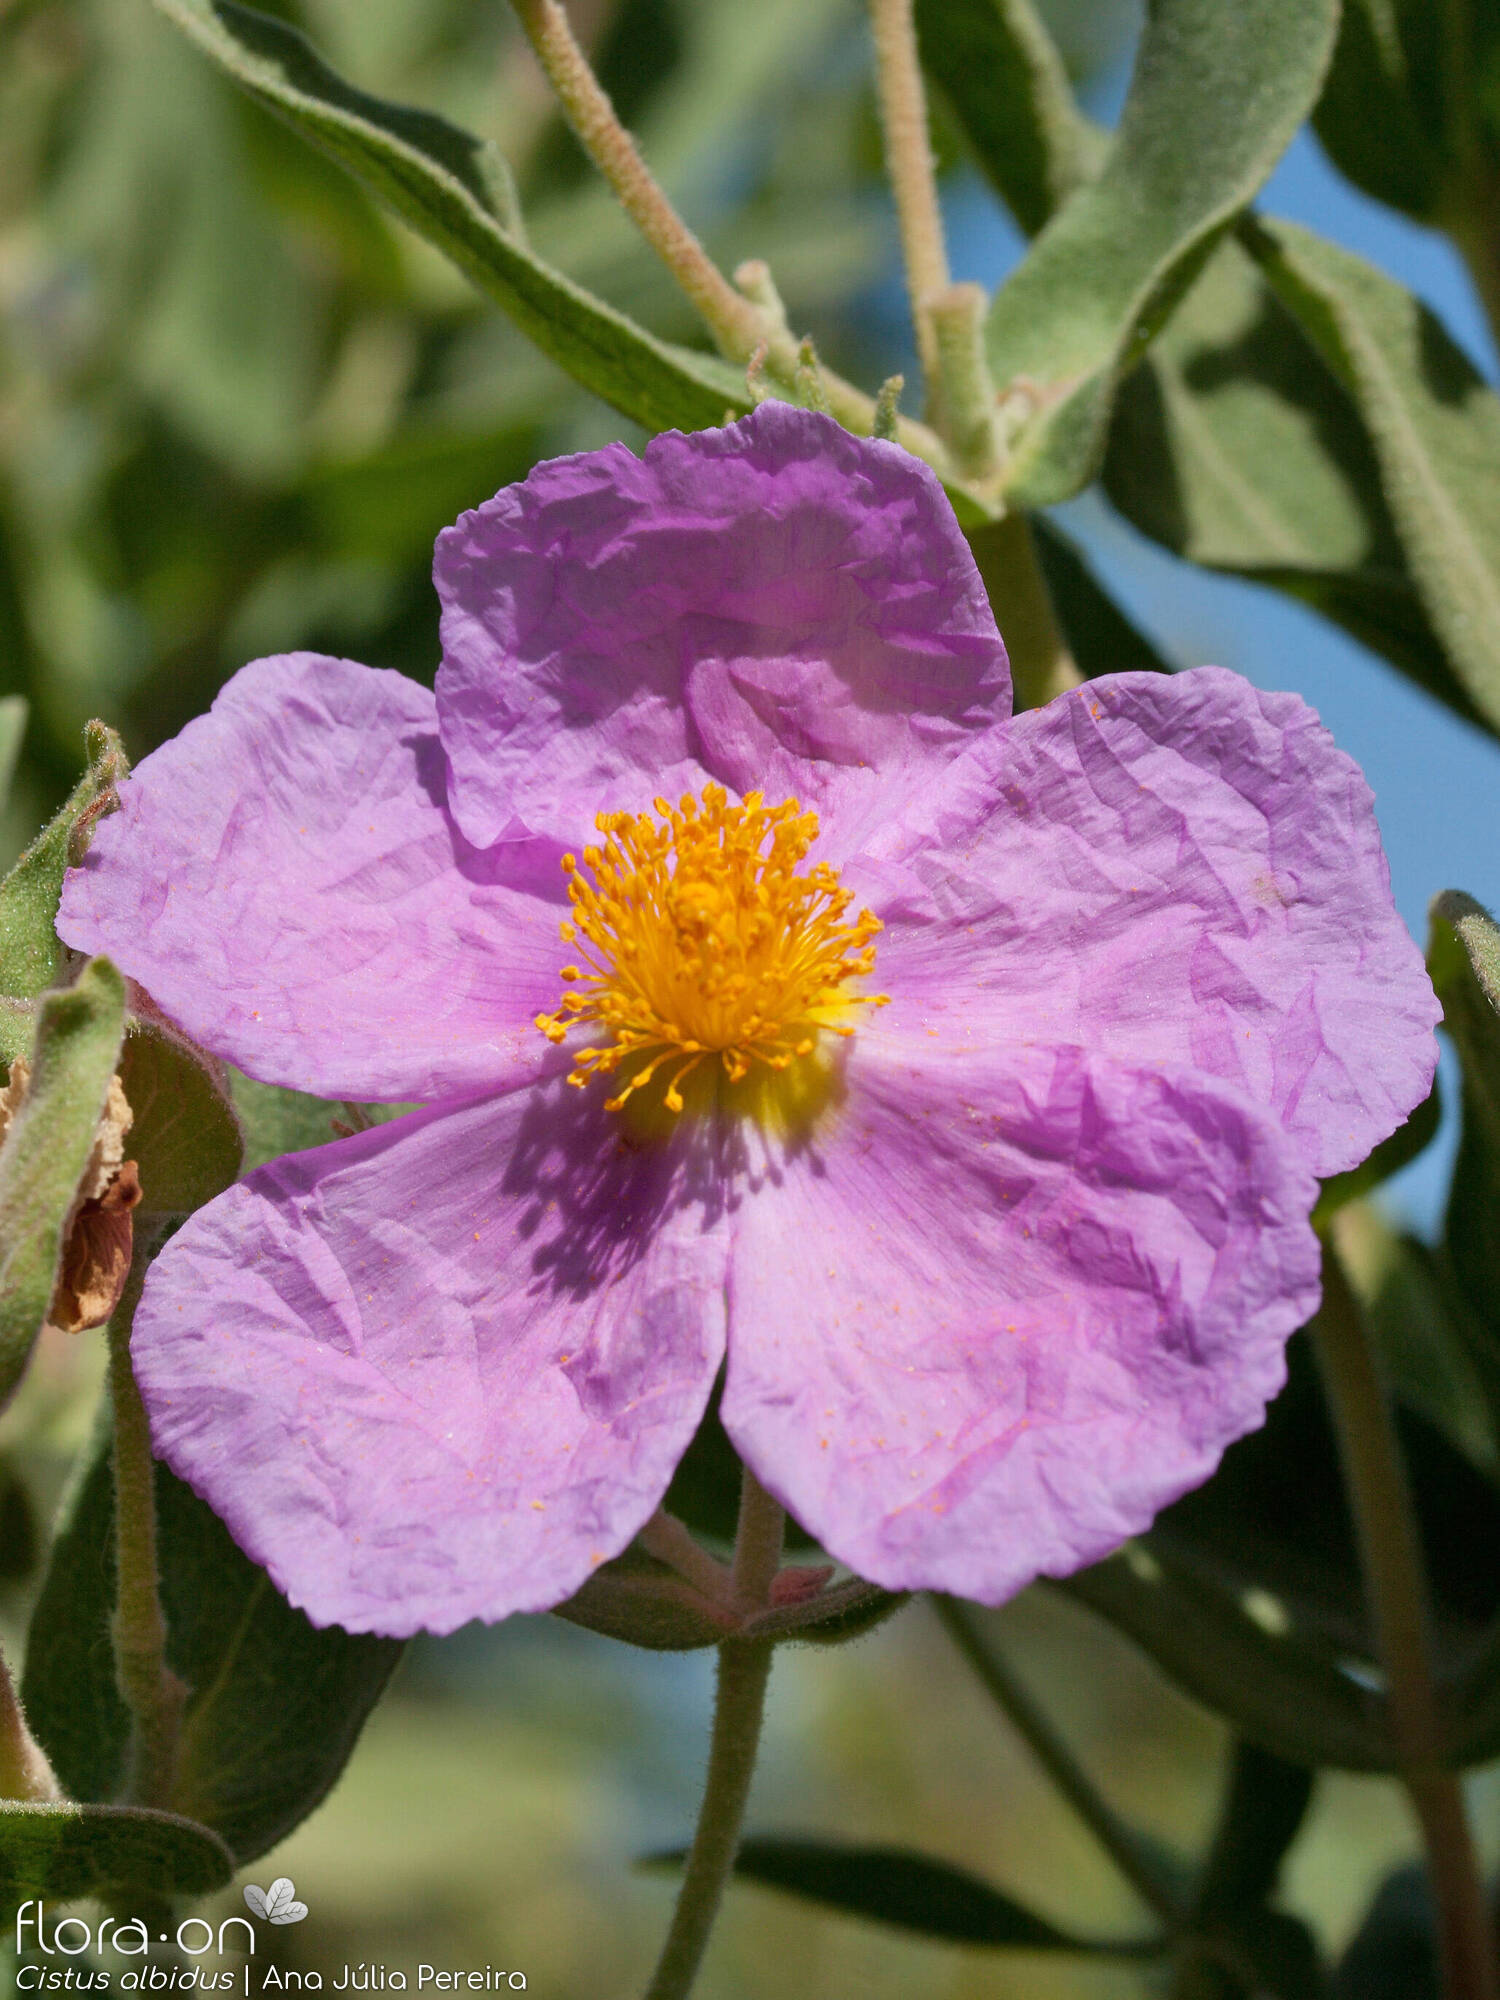 Cistus albidus - Flor (close-up) | Ana Júlia Pereira; CC BY-NC 4.0